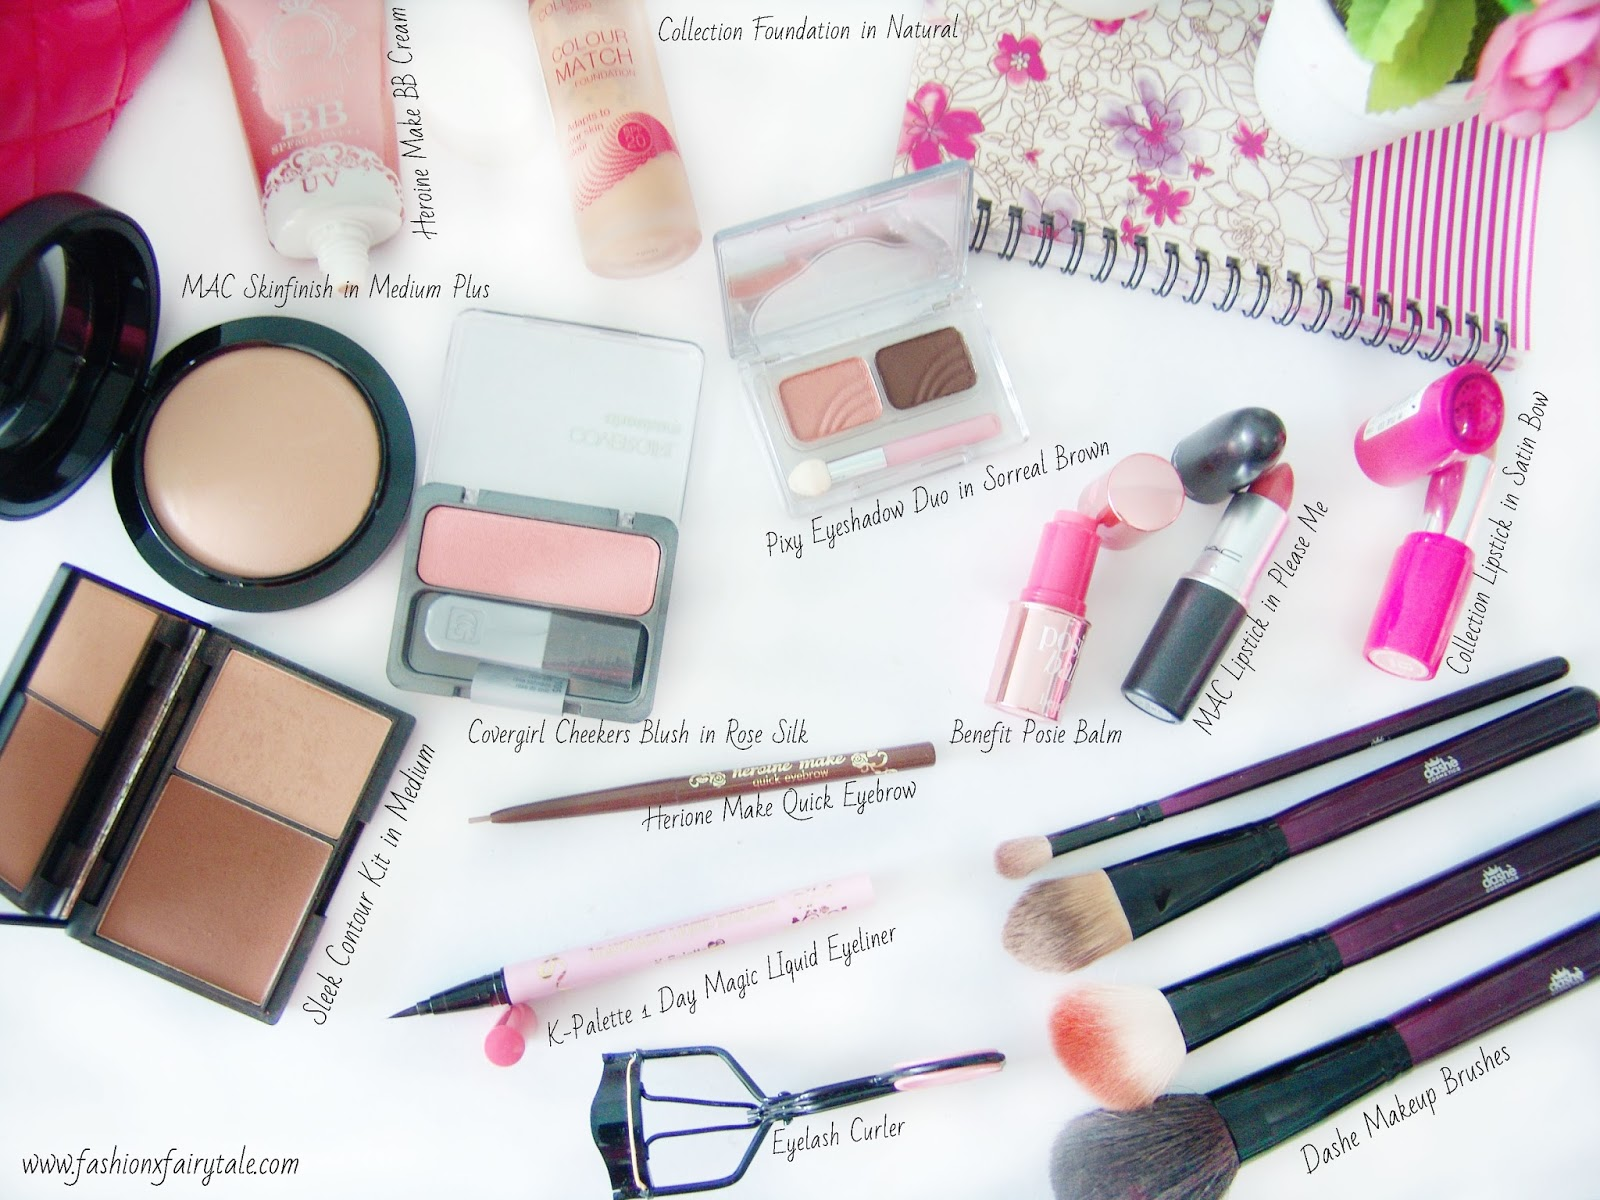 Whats In My Makeup Bag Fashion Fairytale Pixy Eyebrow Brown Base